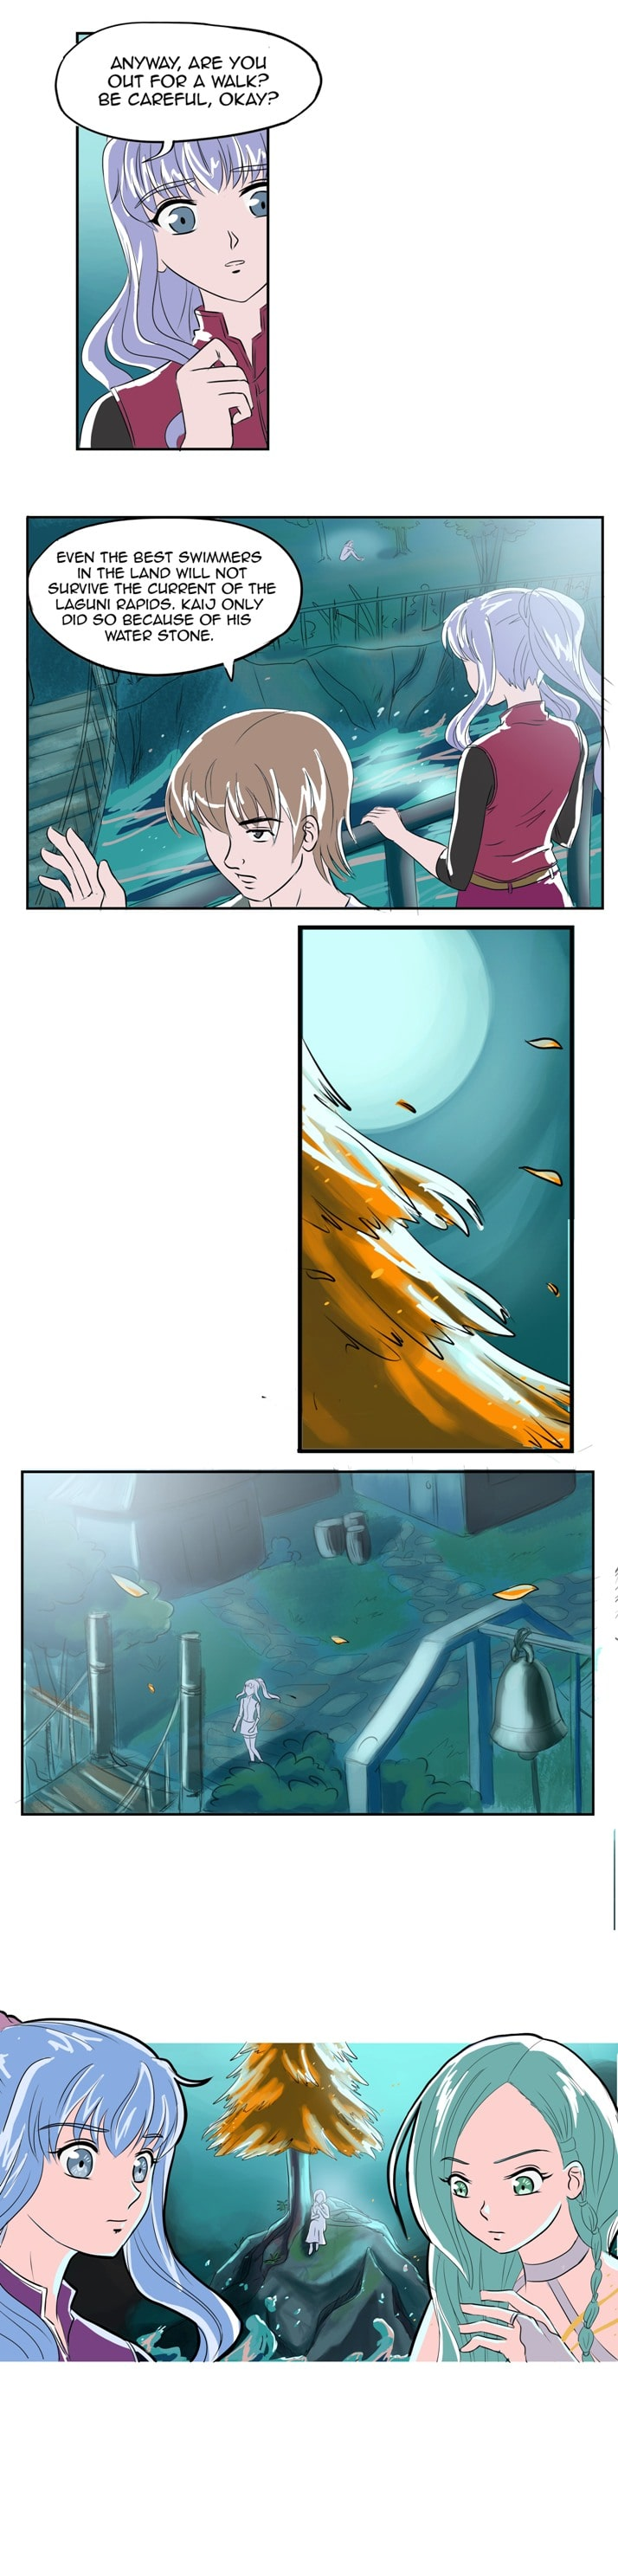 Chapter 4 Page 65